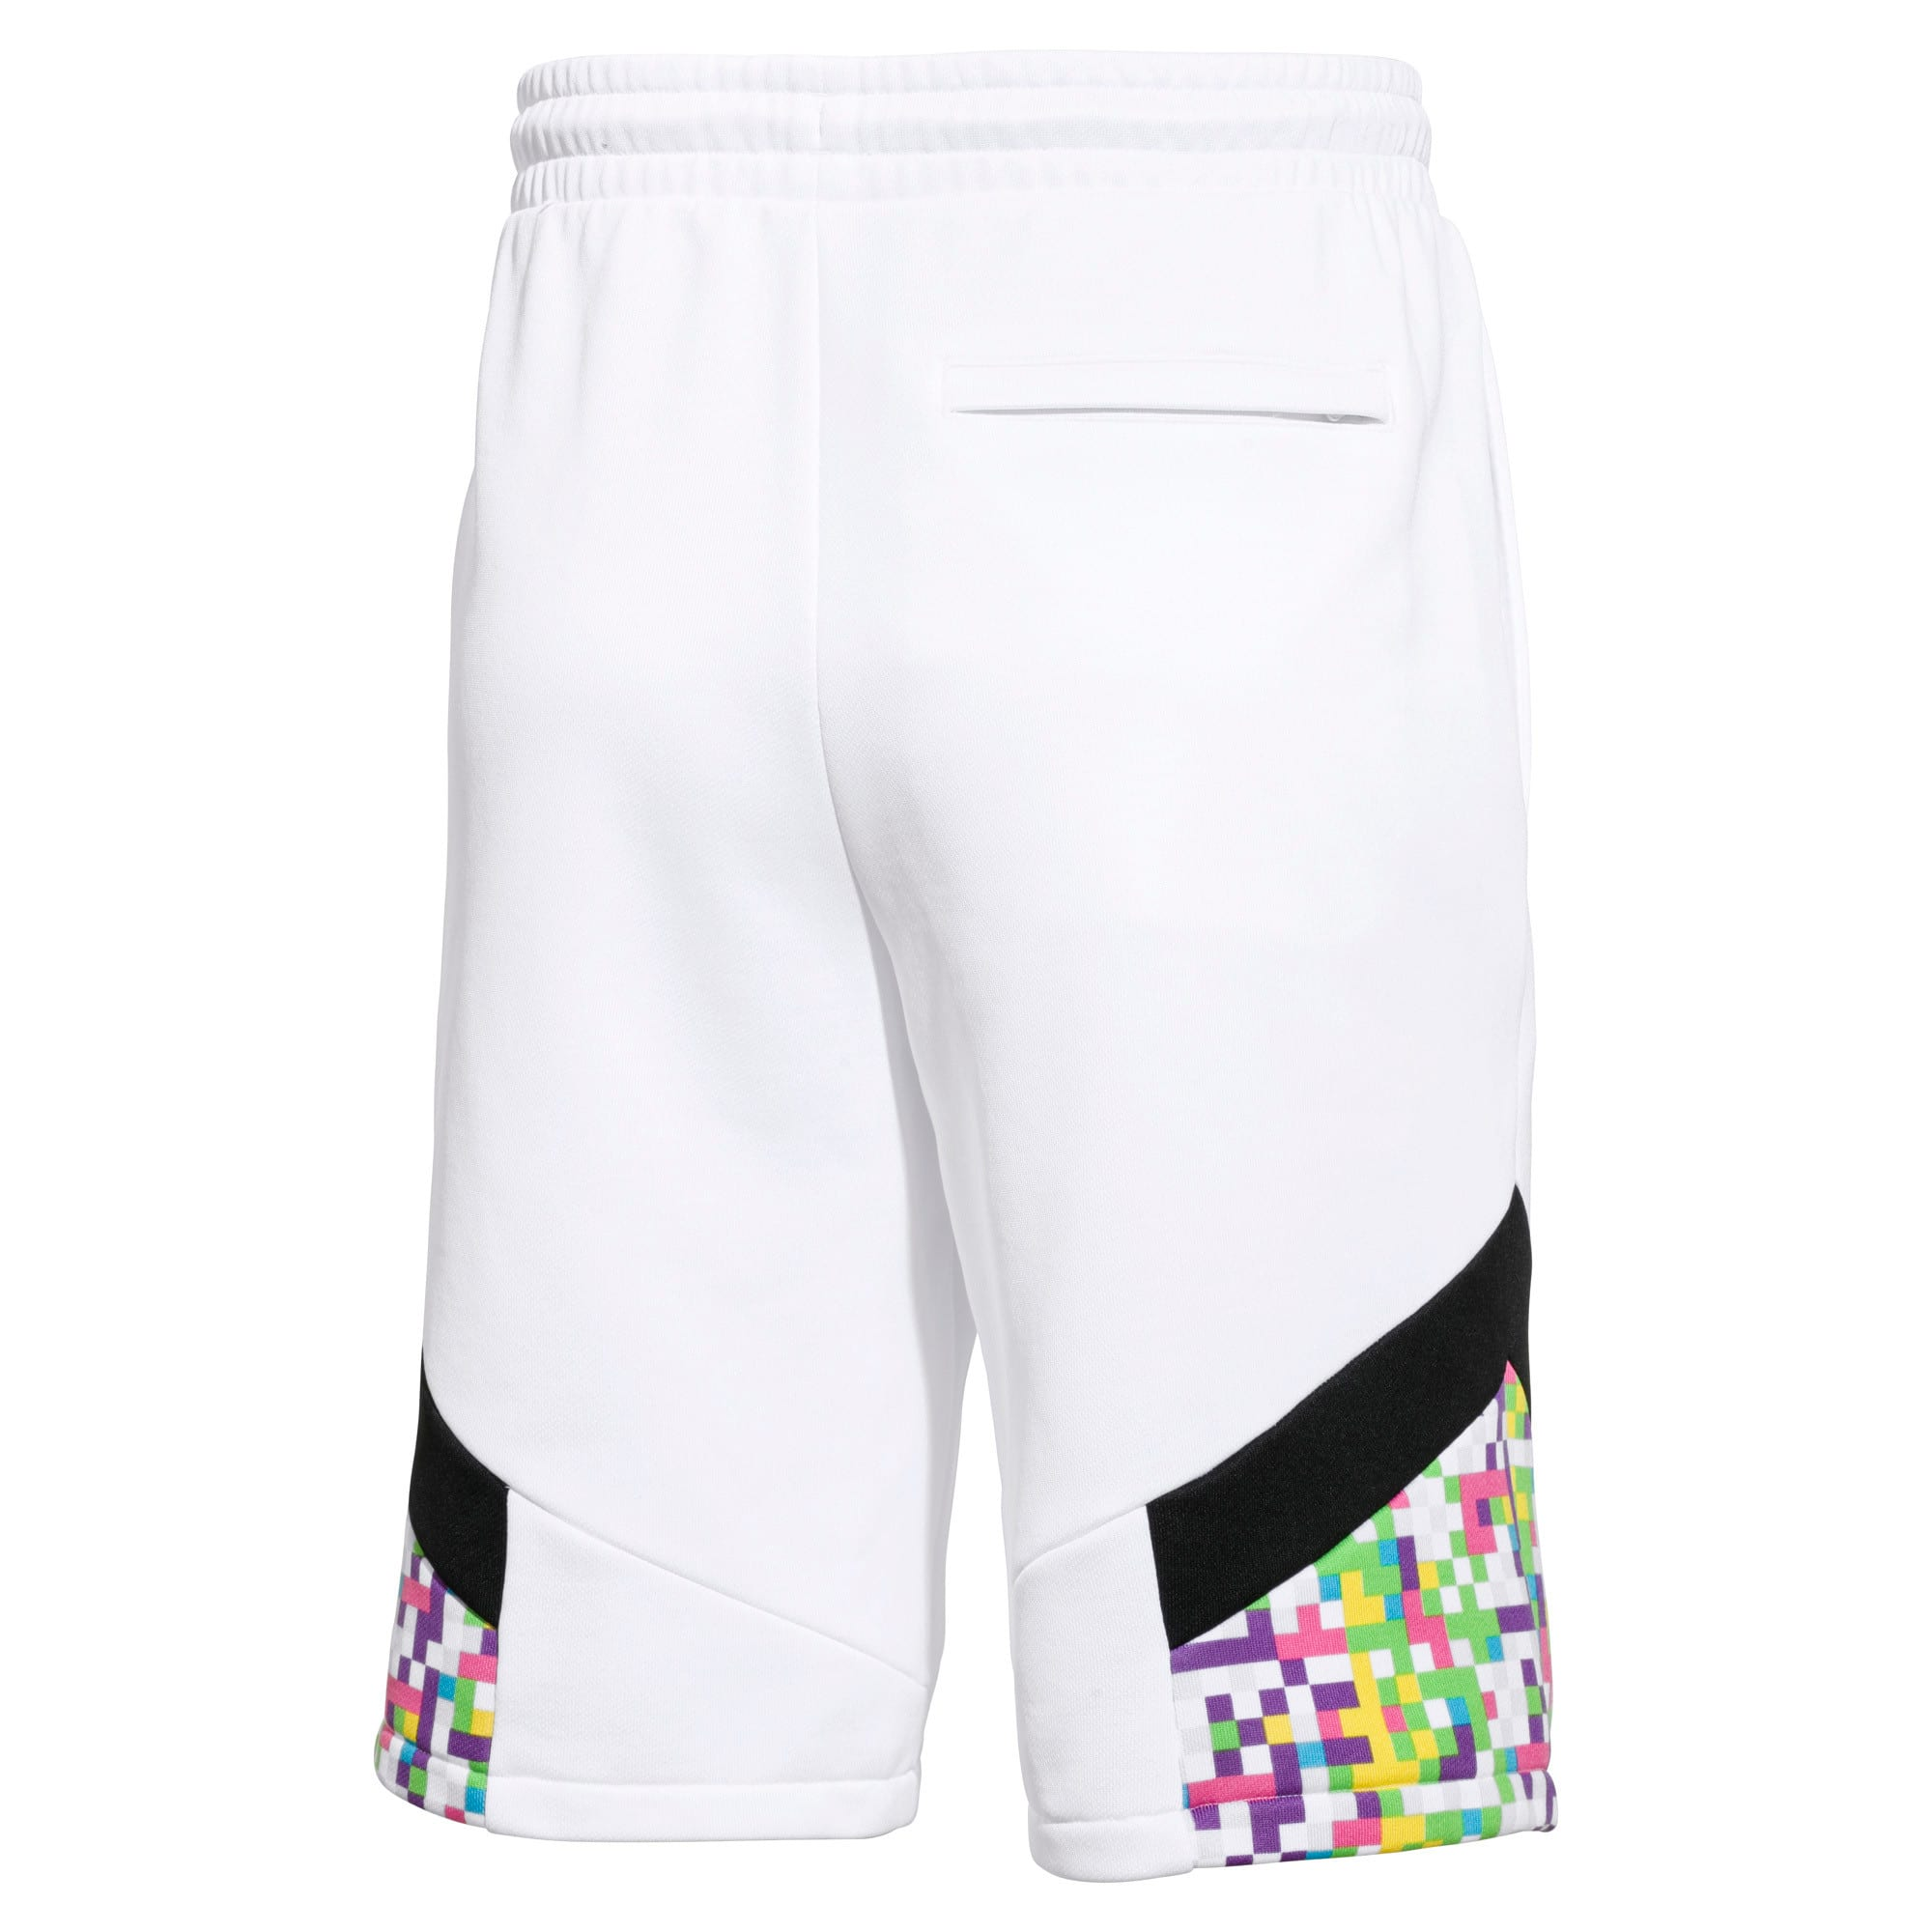 PUMA x MTV MCS All-Over Printed Men's Shorts, Puma White-AOP, large